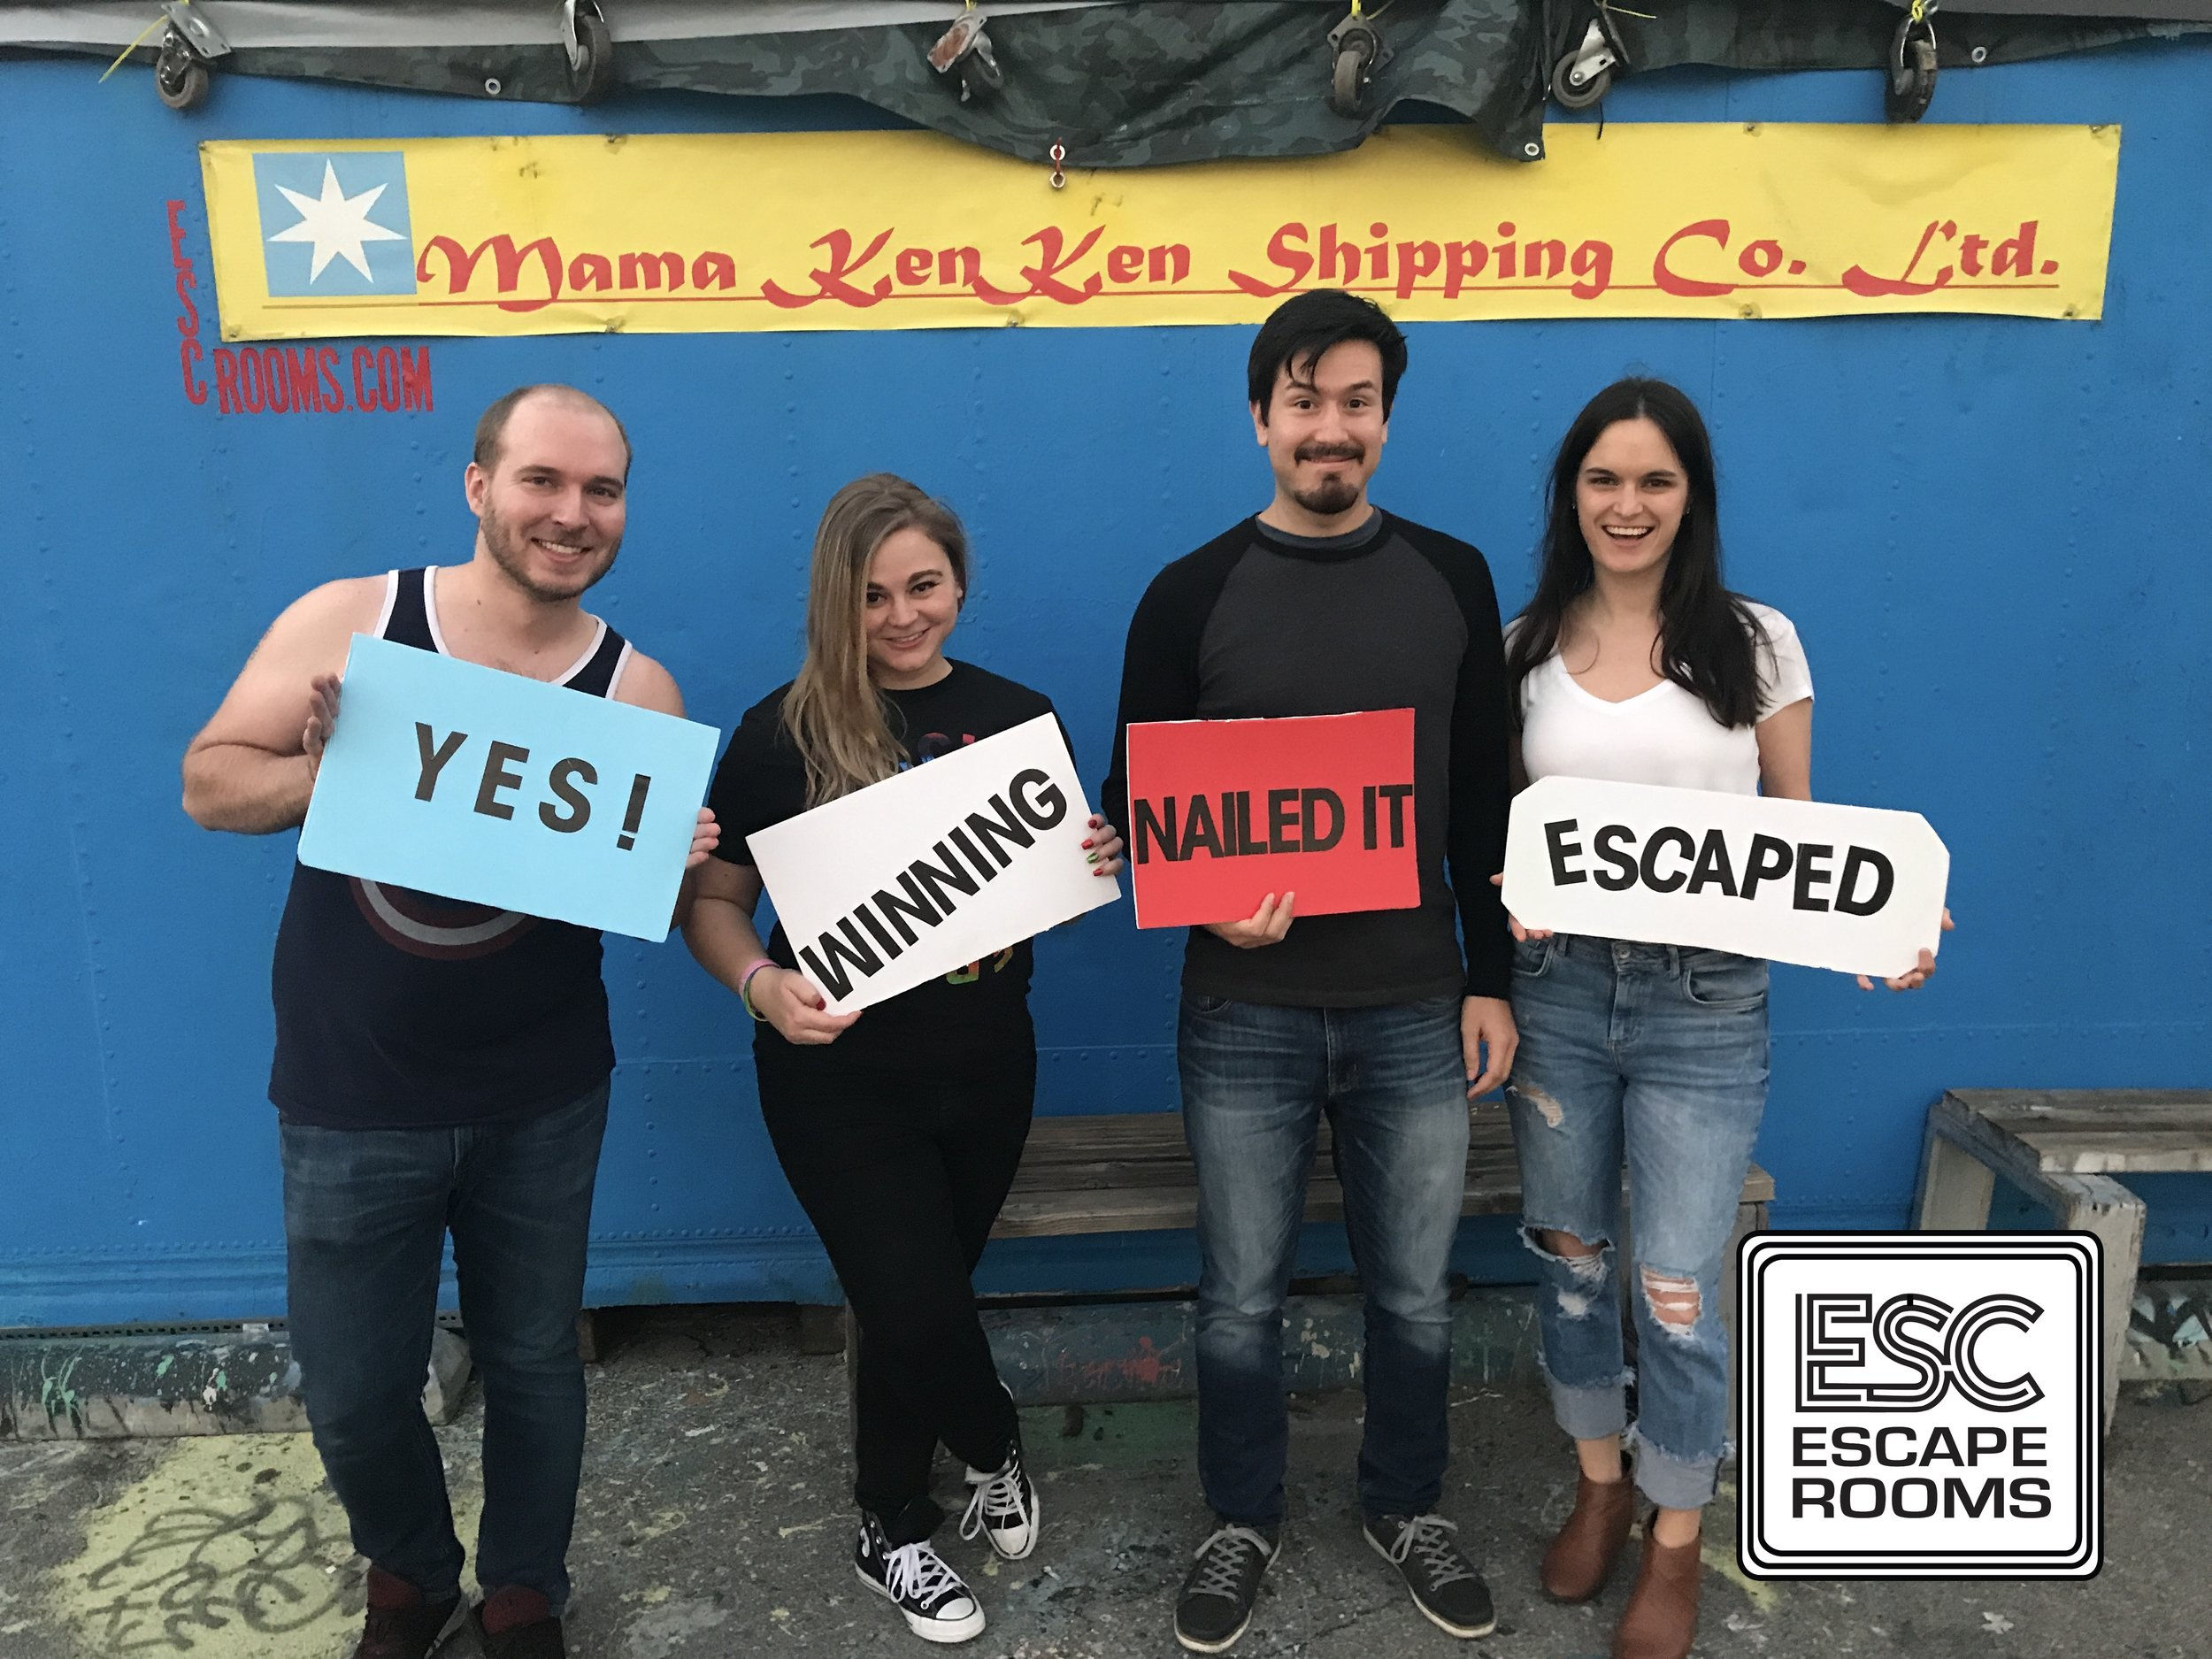 esc-escape-rooms-team-sneep.JPG